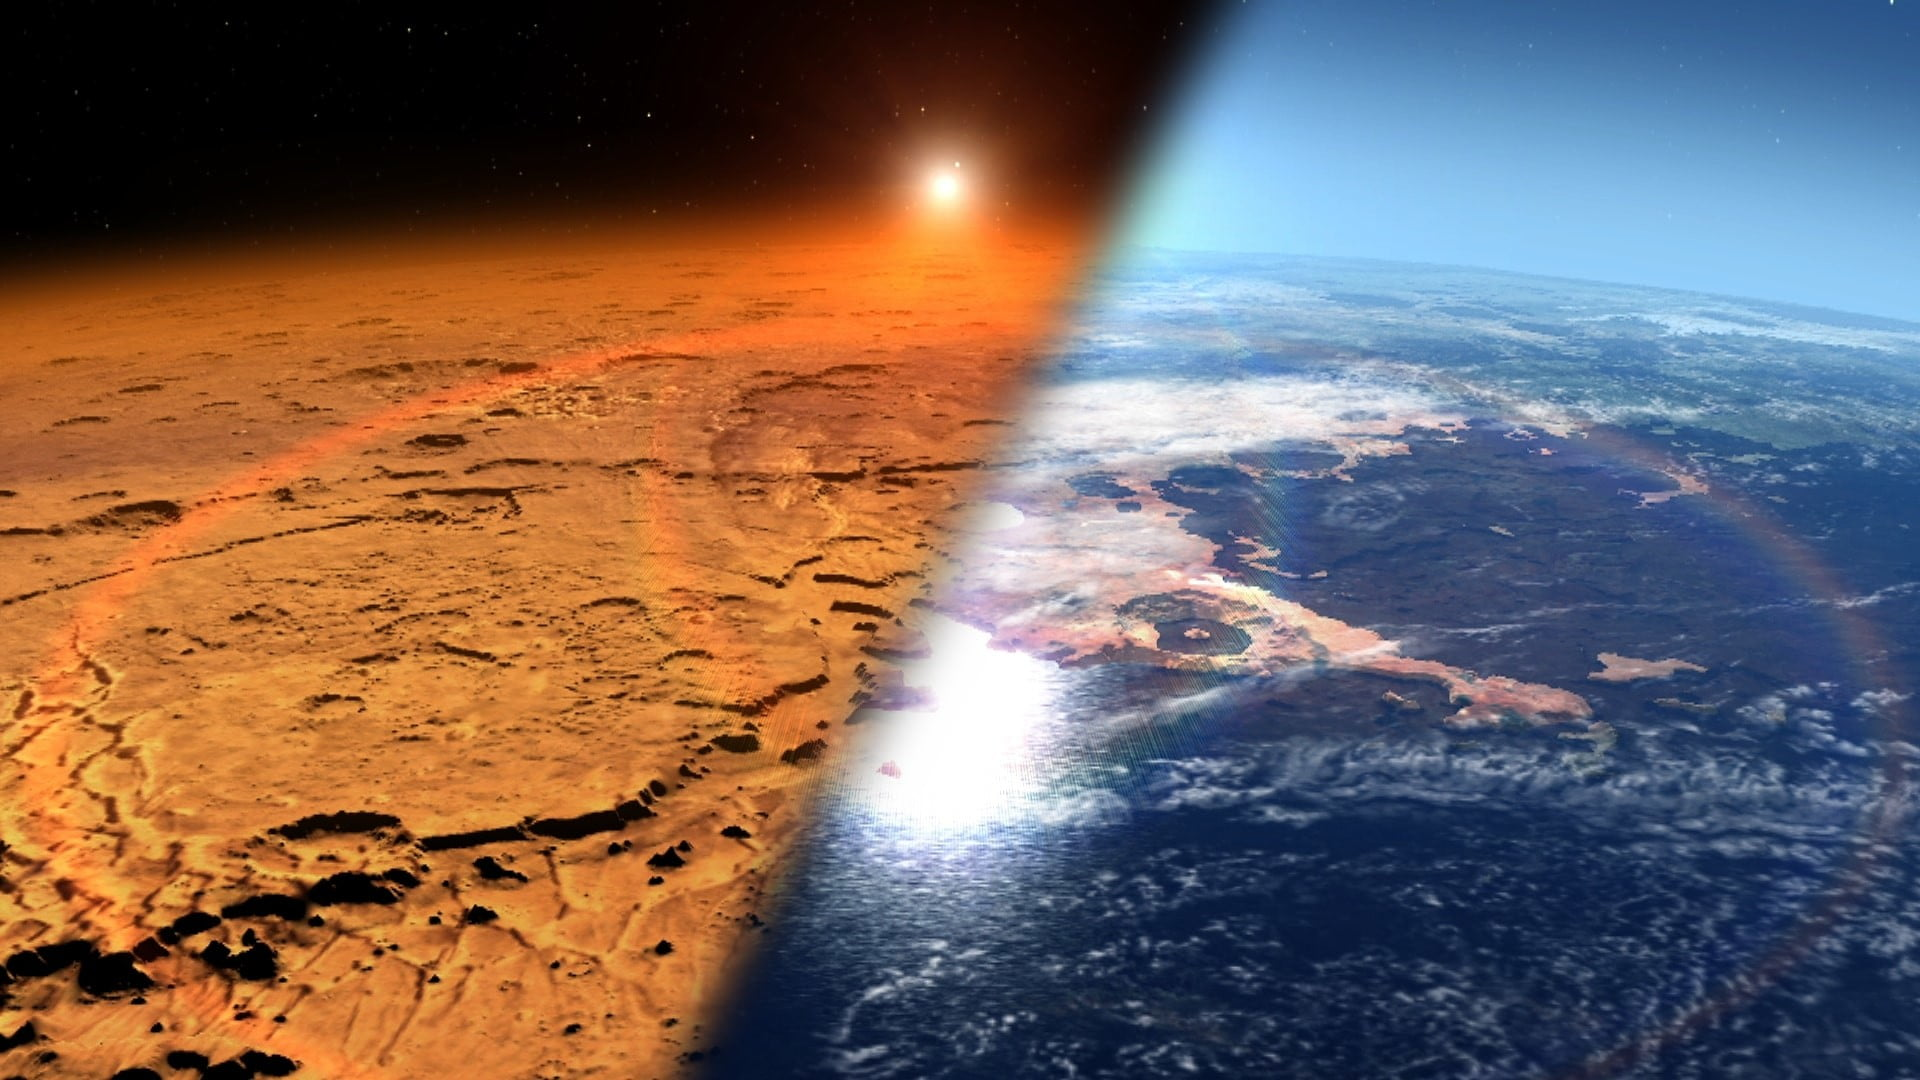 An artist'c concept showing Mars today on the left and Mars as it could have been, covered in water, on the right.